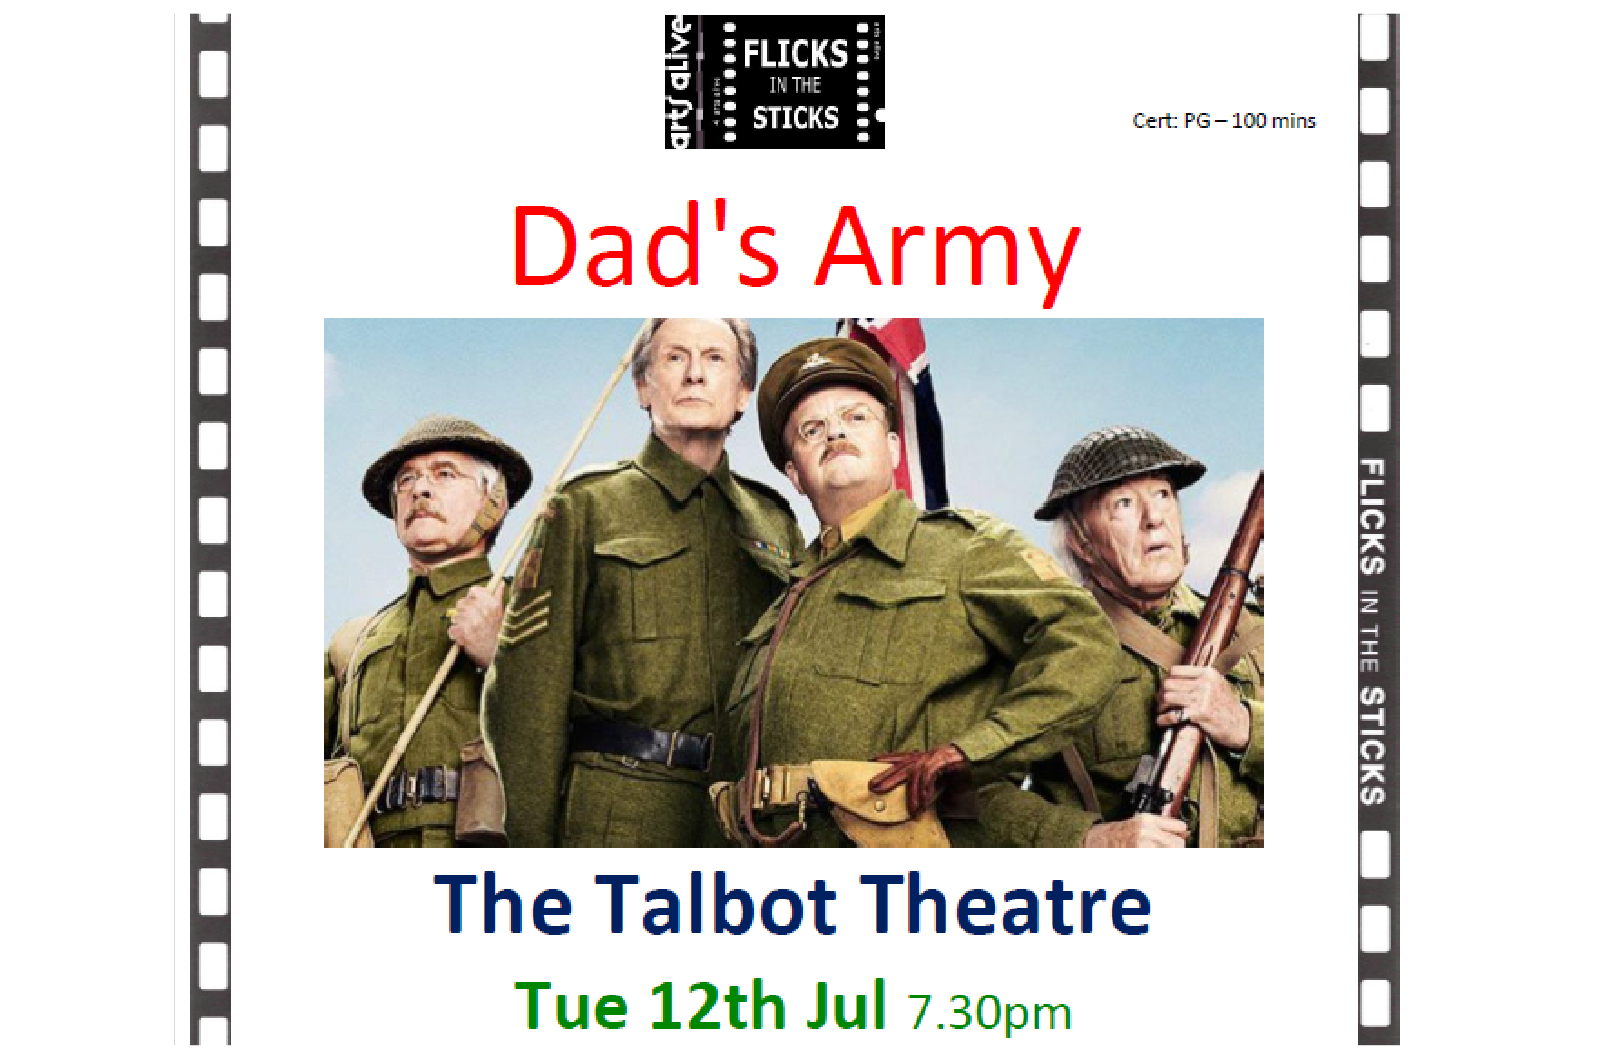 Tuesday 12th July - The Talbot Theatre